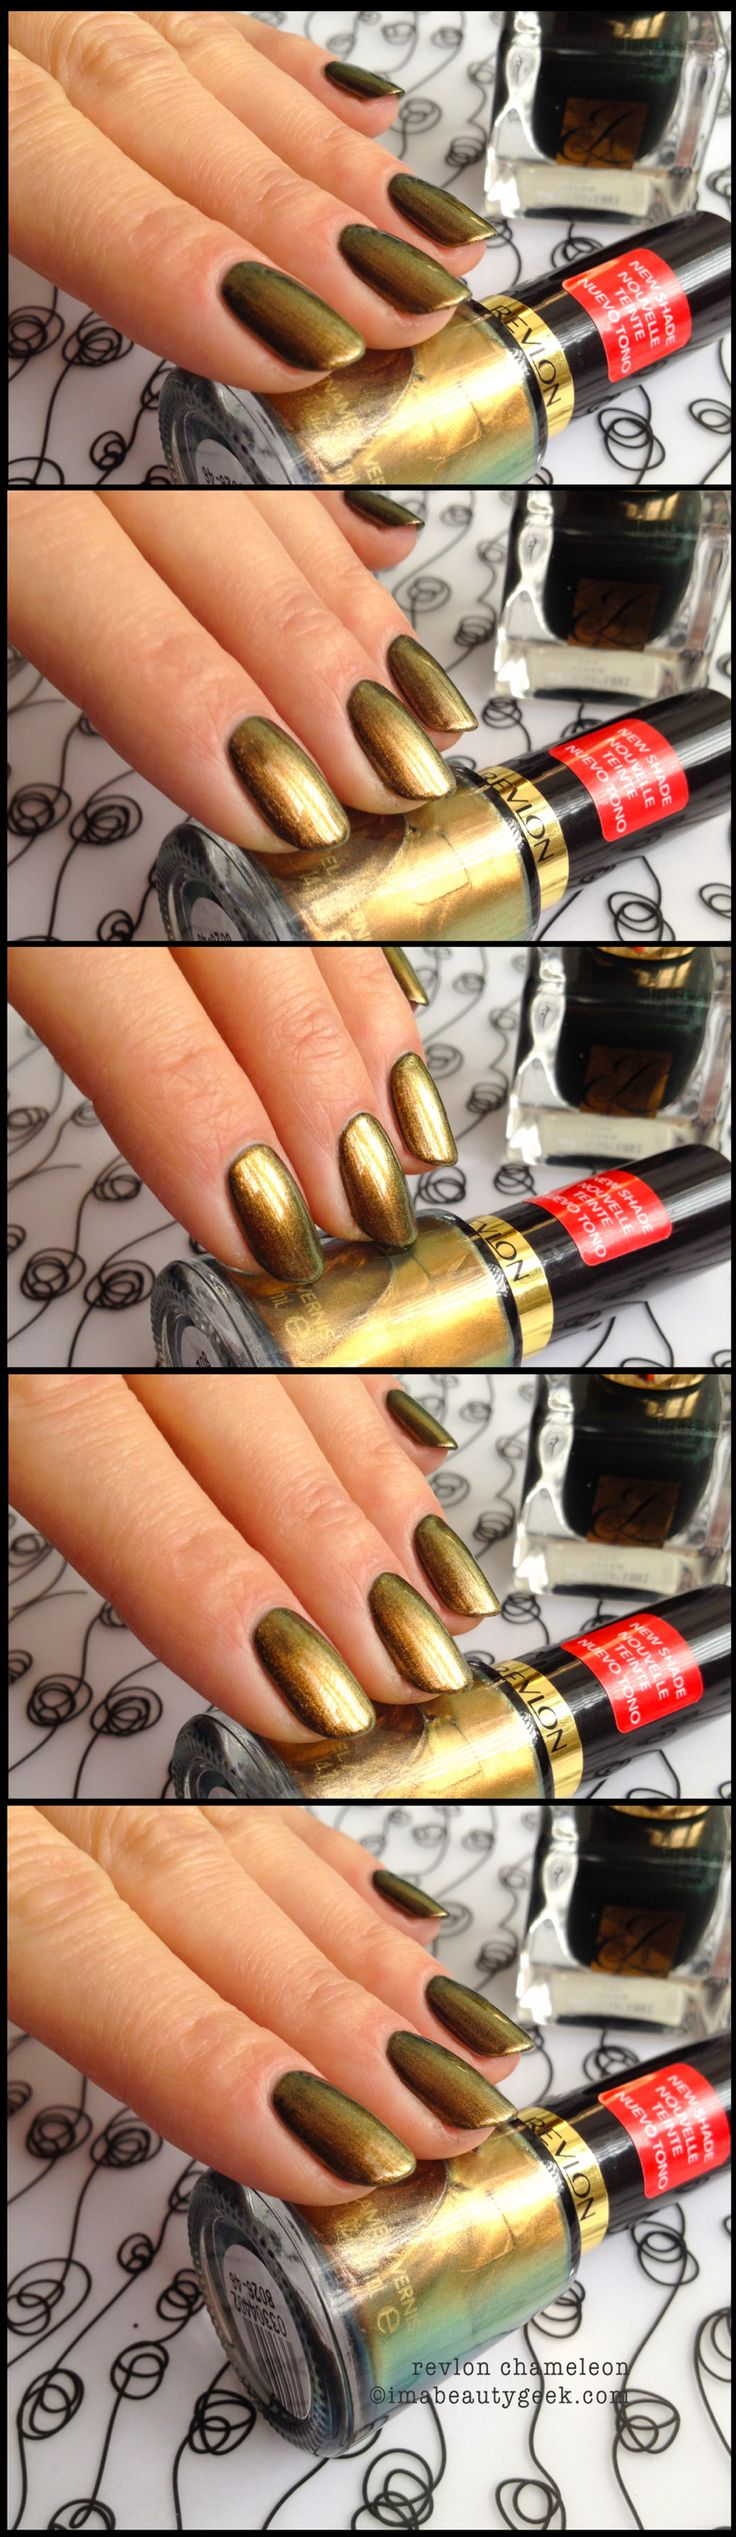 """""""Revlon Chameleon Nail Polish - ©2104imabeautygeek.com""""   i have this one, I love it, and haven't seen any Aztec gold polish this beautiful EVER!  I'm pretty sure that it was limited edition, but if I come across any more, I'm gonna stock up!"""